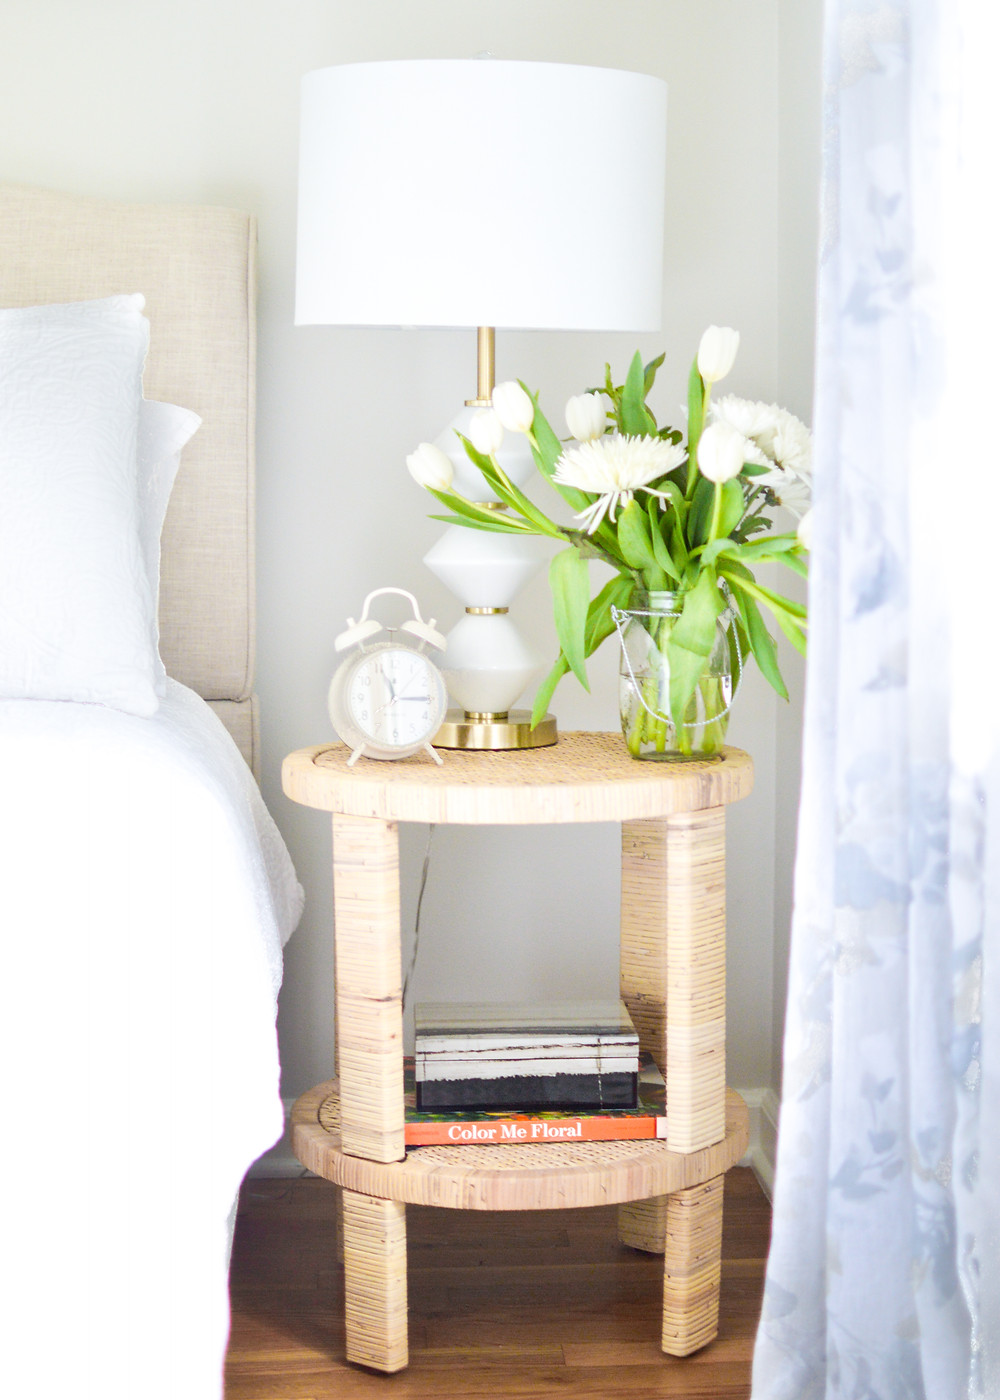 Beautiful bedroom vignette with rattan side table, linen headboard and tulips in a vase.